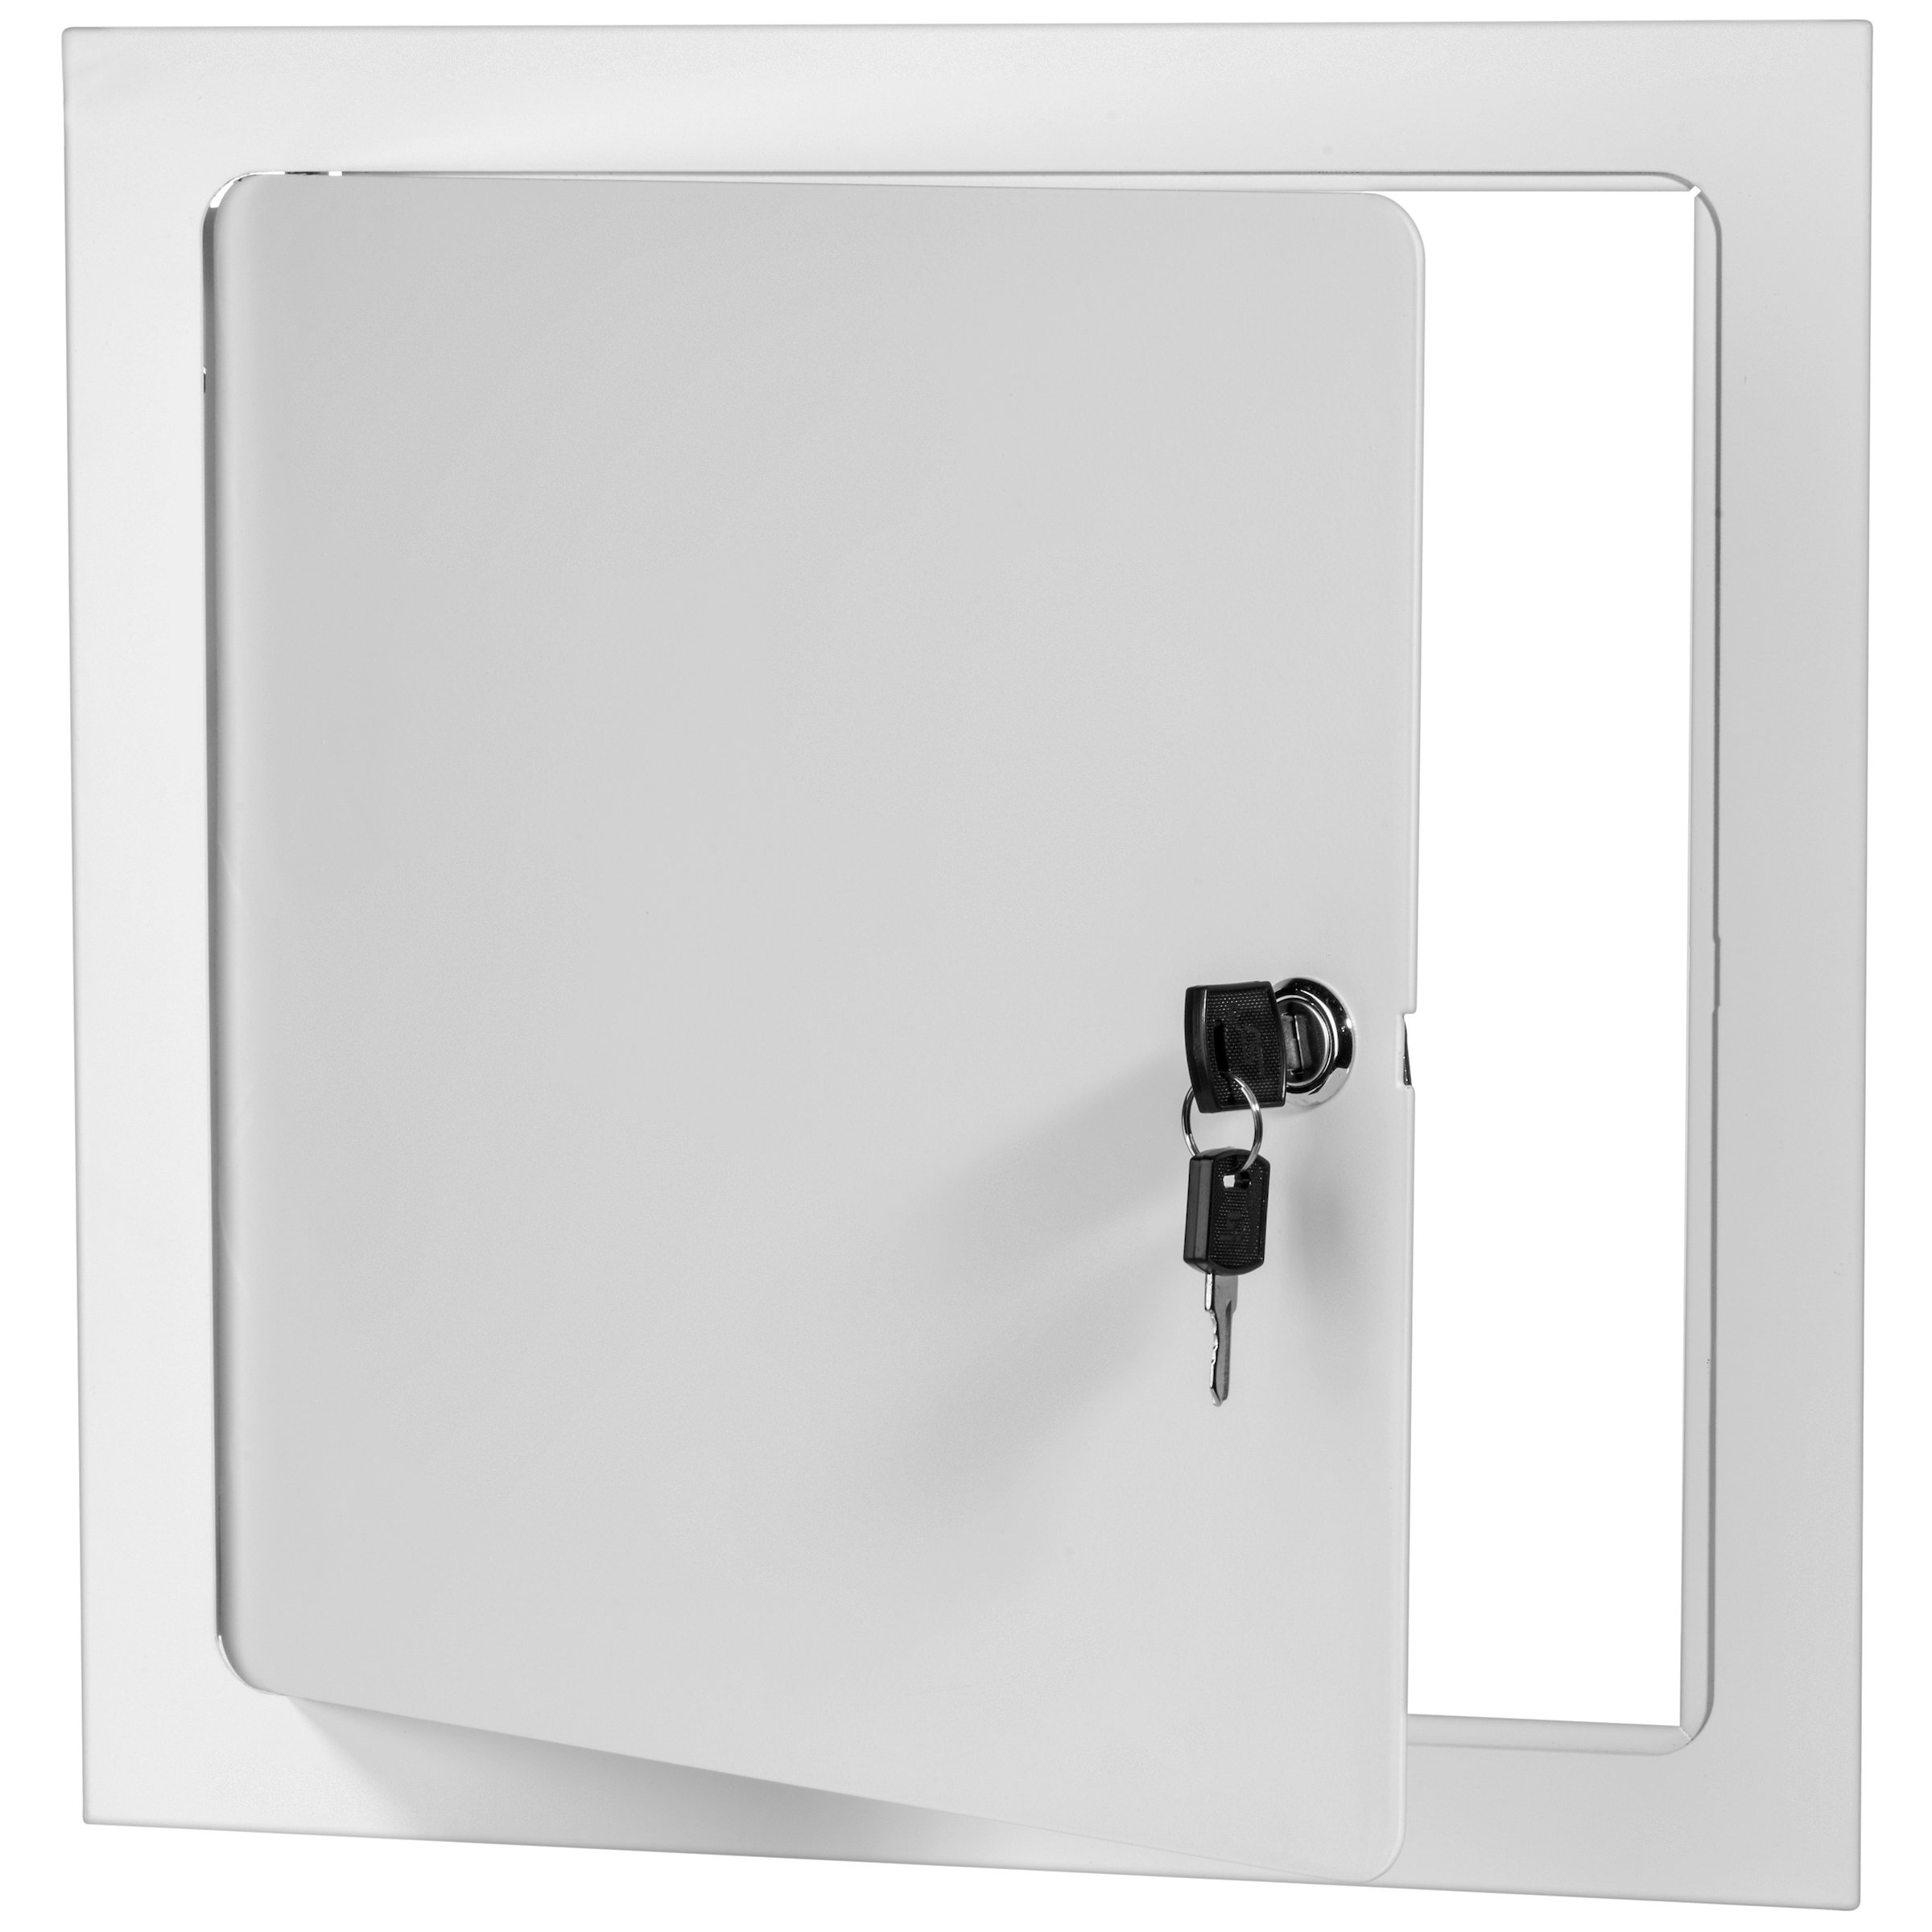 Premier 5000 Series Commercial Grade Steel Access Door, 14 x 14 Flush Universal Mount, White (Keyed Cylinder Latch)